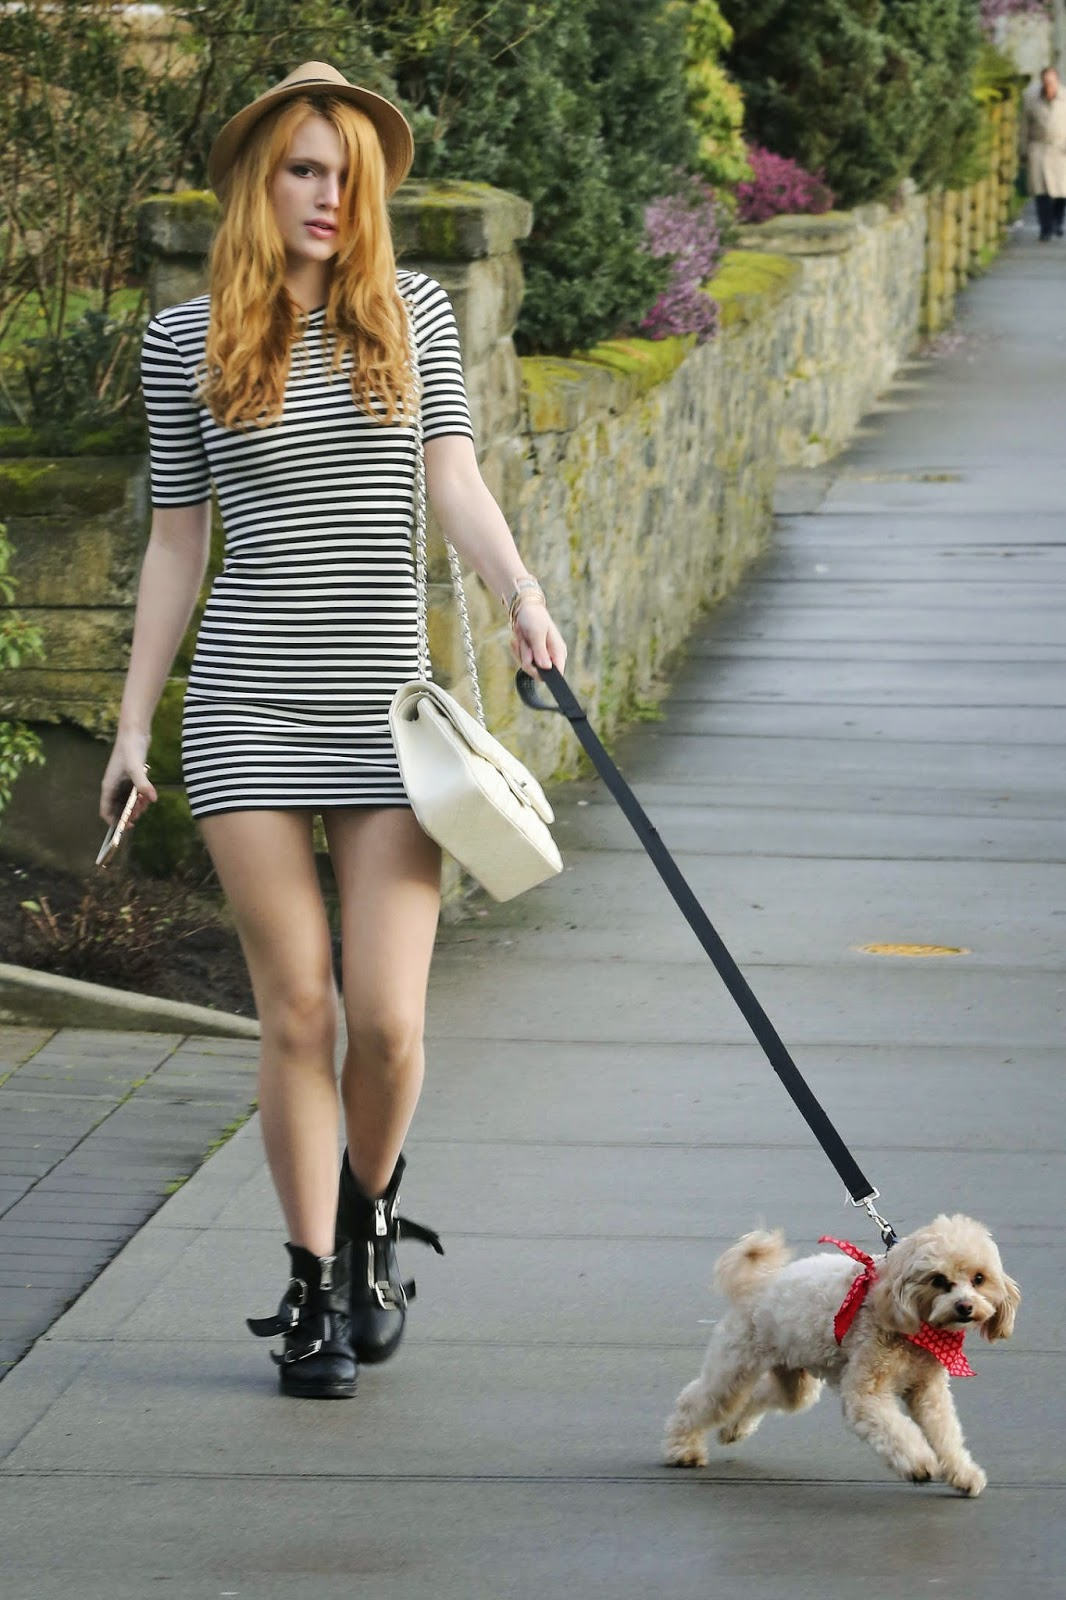 Bella Thorne flaunts long legs while dog walking in LA